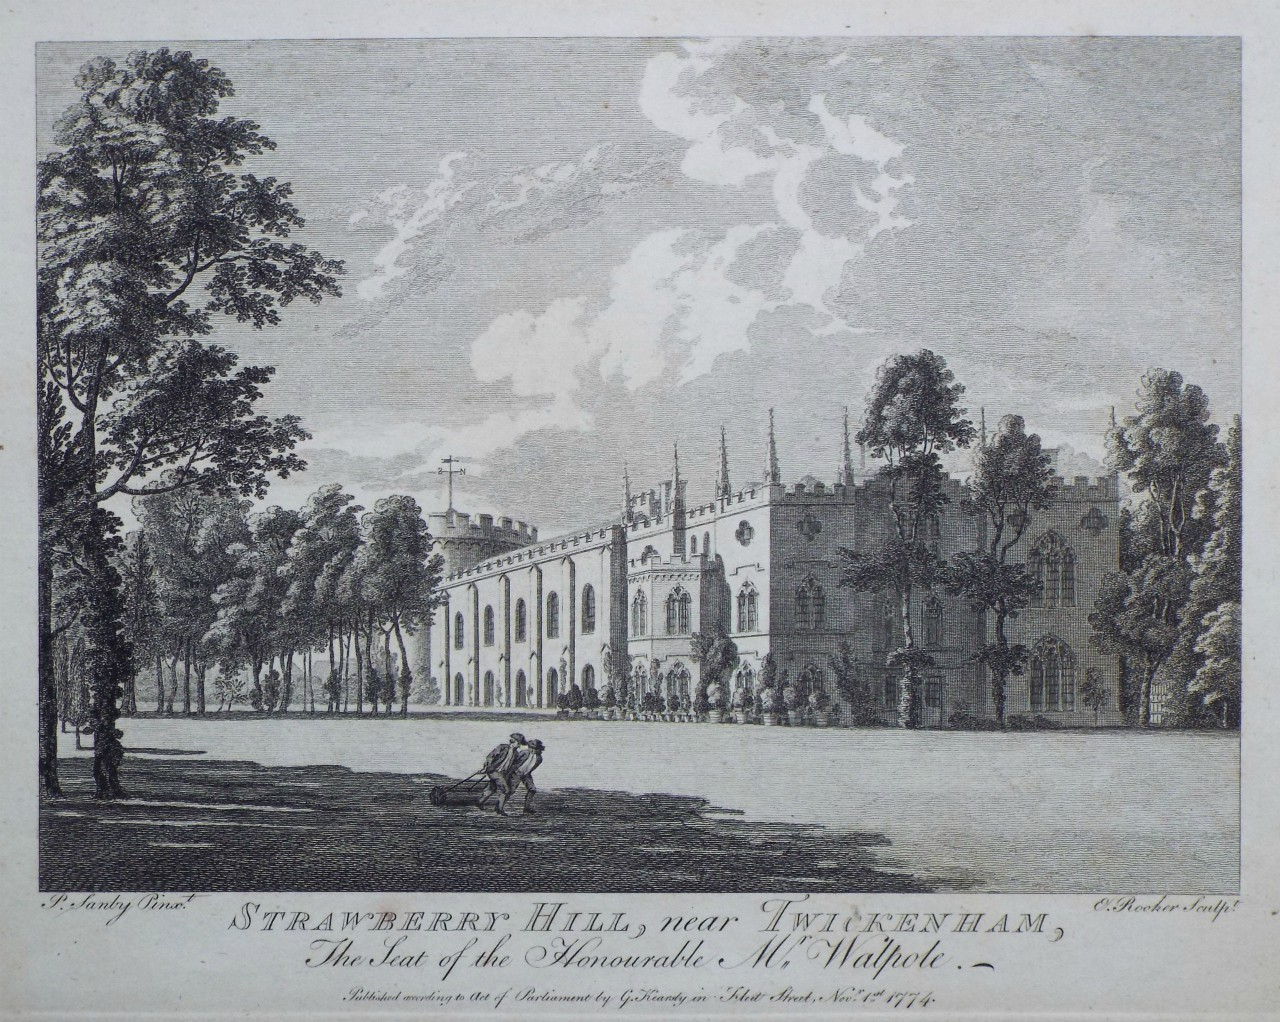 Print - Strawberry Hill, near Twickenham, The Seat of the Honourable Mr. Walpole. - Rooker